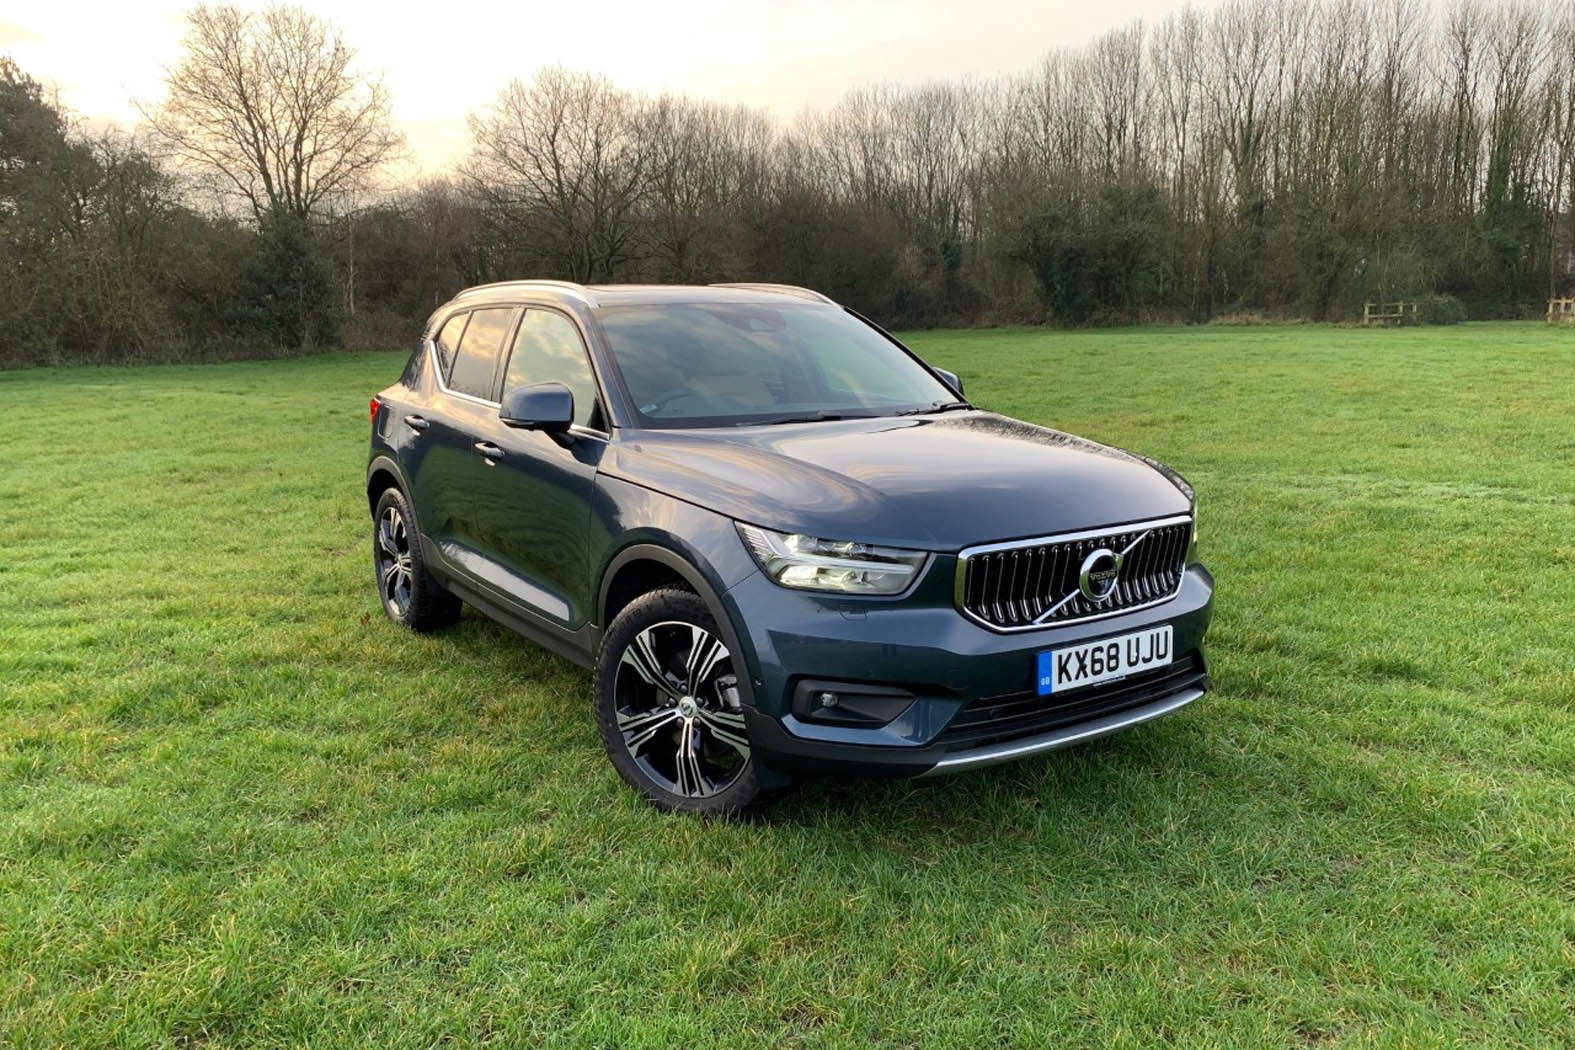 Volvo XC40 D3 AWD Inscription Pro | Eurekar